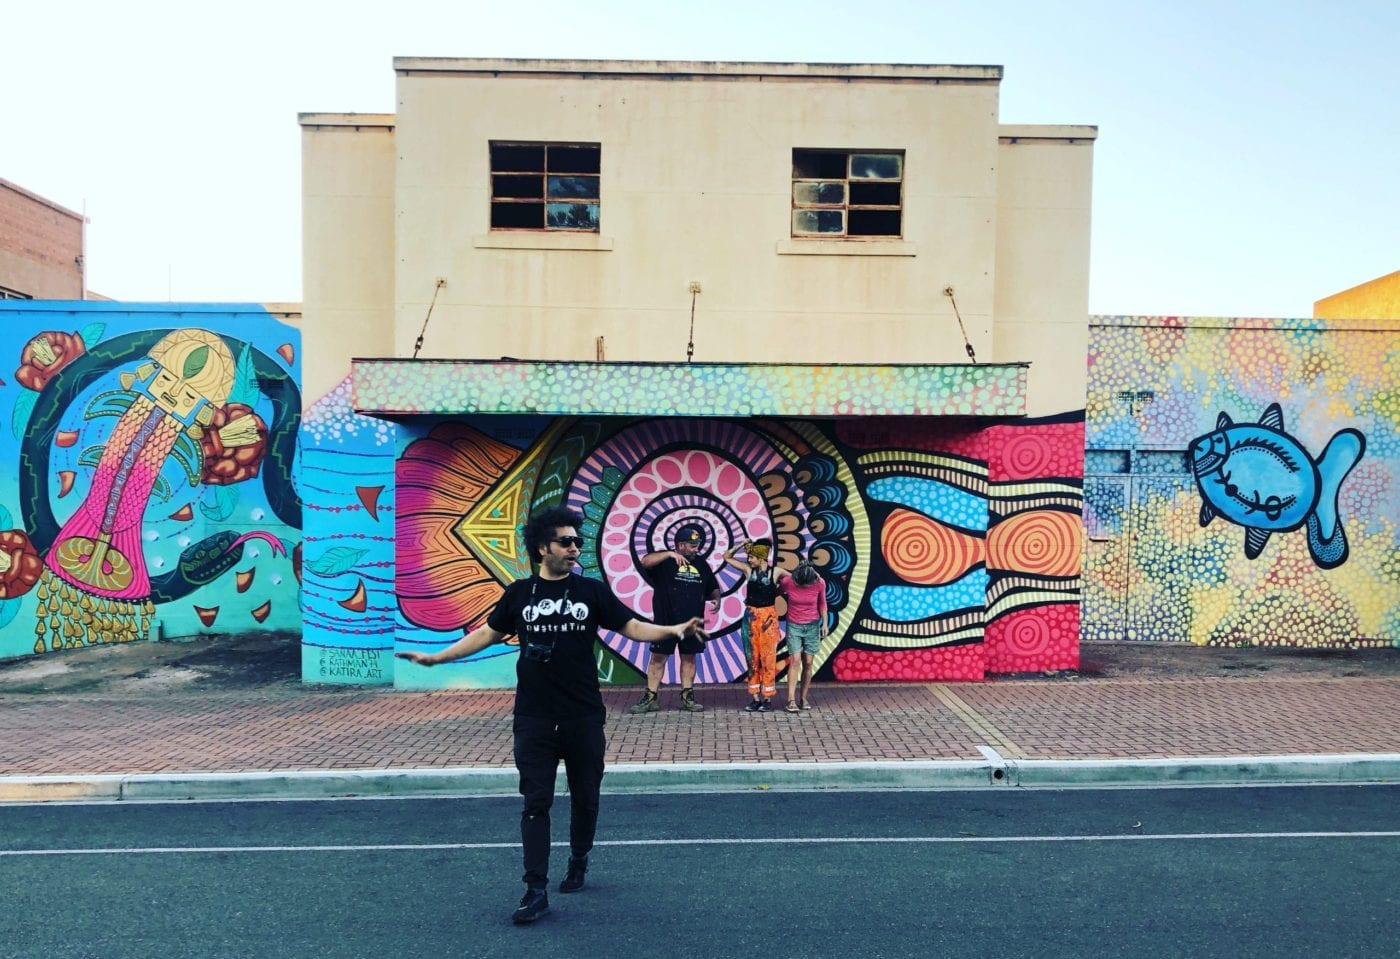 Whyalla mural by Scott Rathman and Katherine Gailer